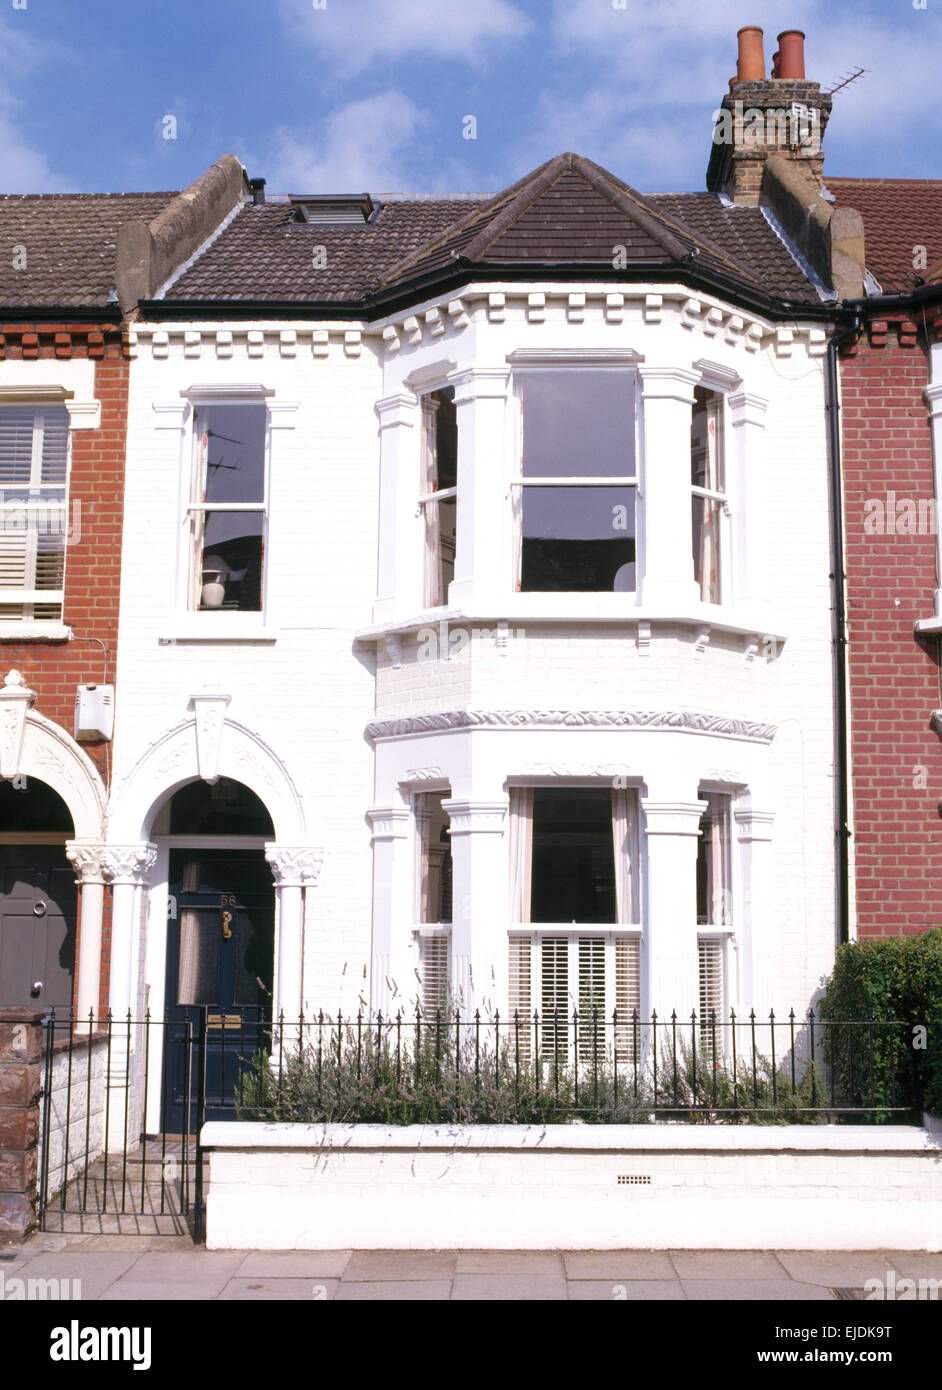 Exterior bay windows - Exterior Of Terraced Victorian House With Bay Windows